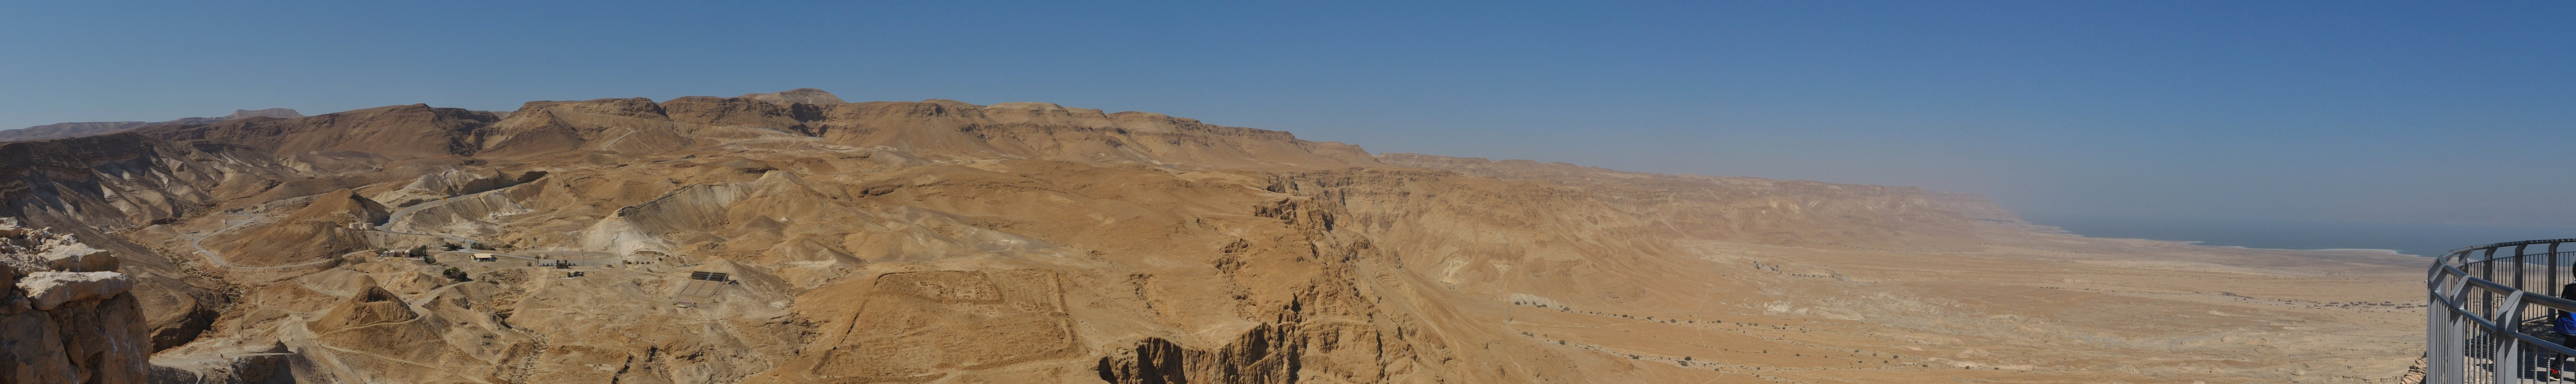 Panoramic View of the Judean Desert (with an old roman camp)